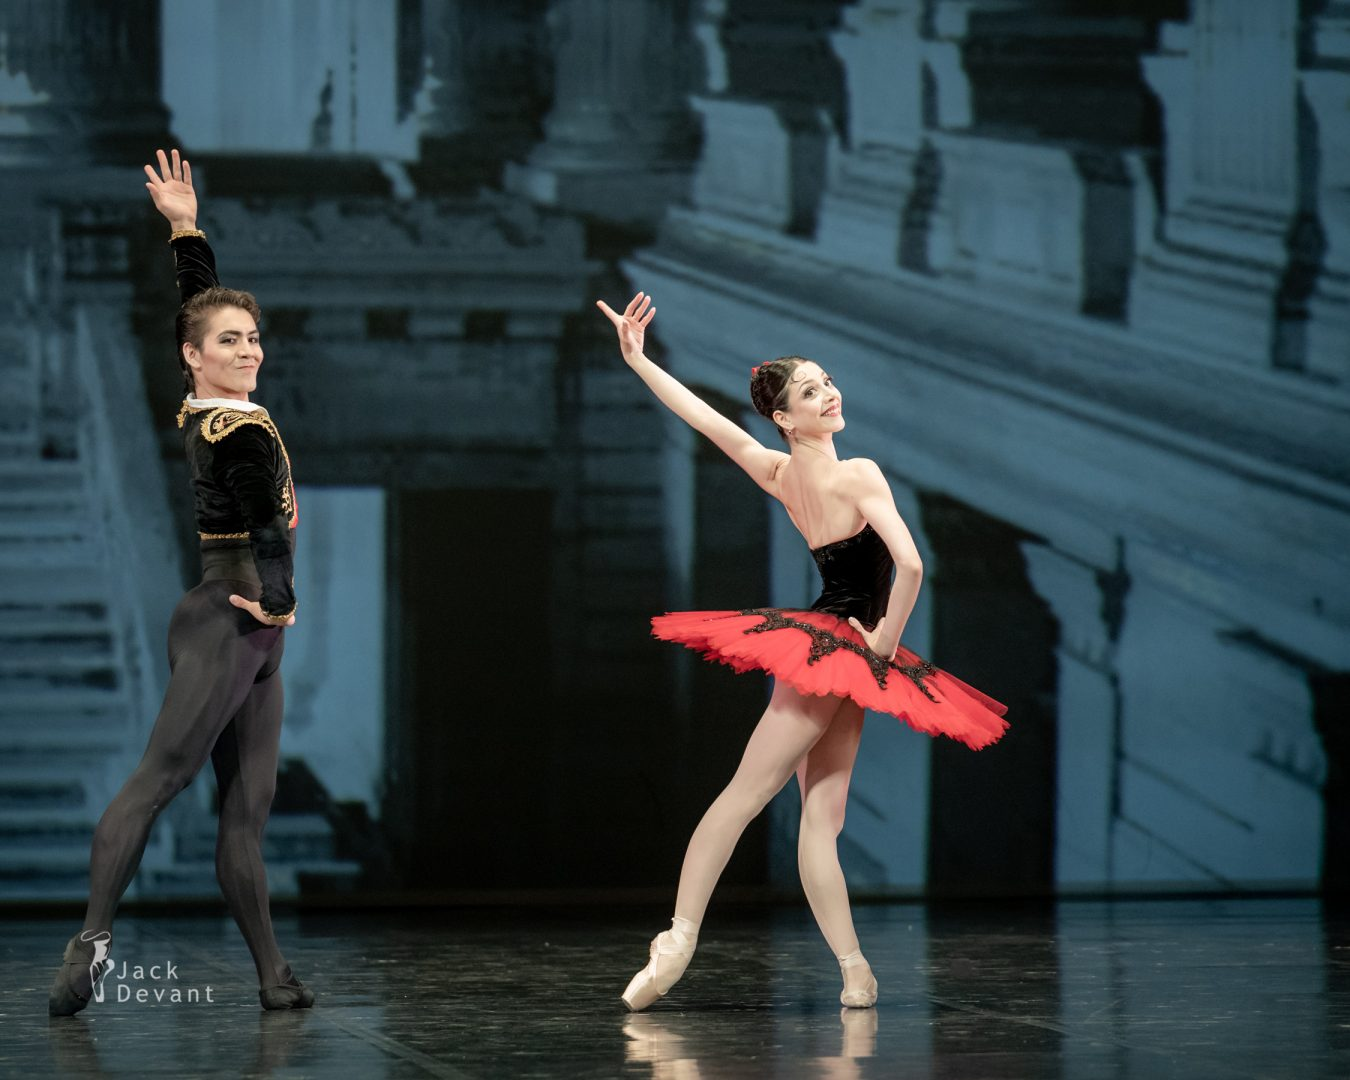 Maia Makhateli and Bakhtiyar Adamzhan in pas de deux from the ballet Don Quixote